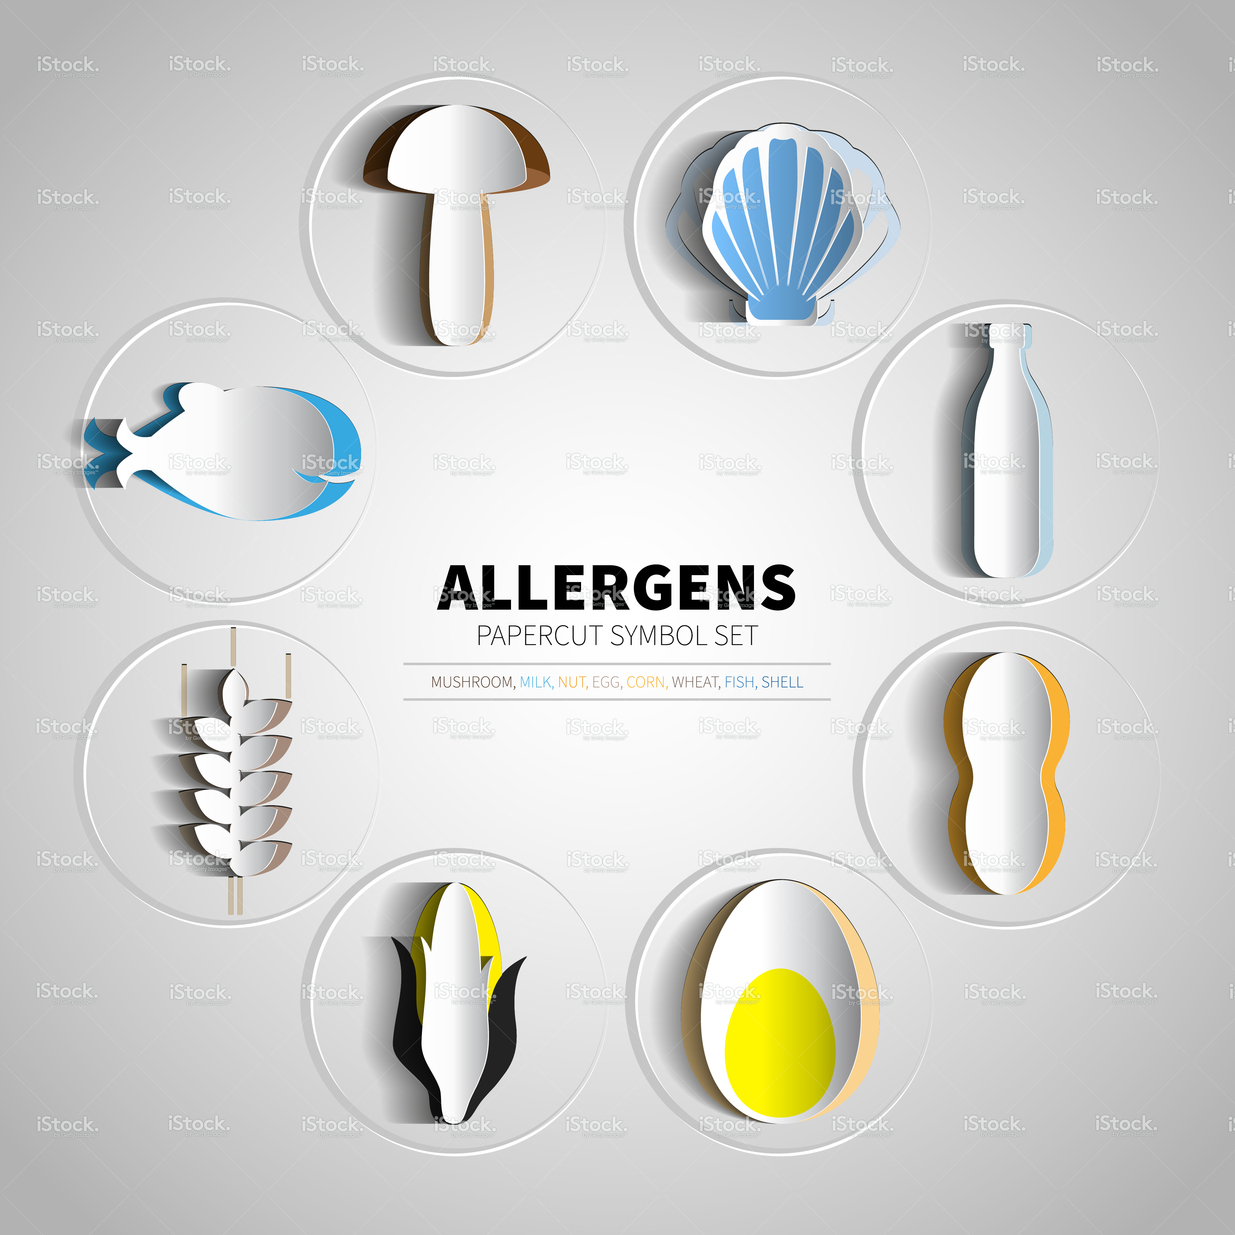 stock-illustration-62124436-vector-icons-set-for-papercut-allergens-products